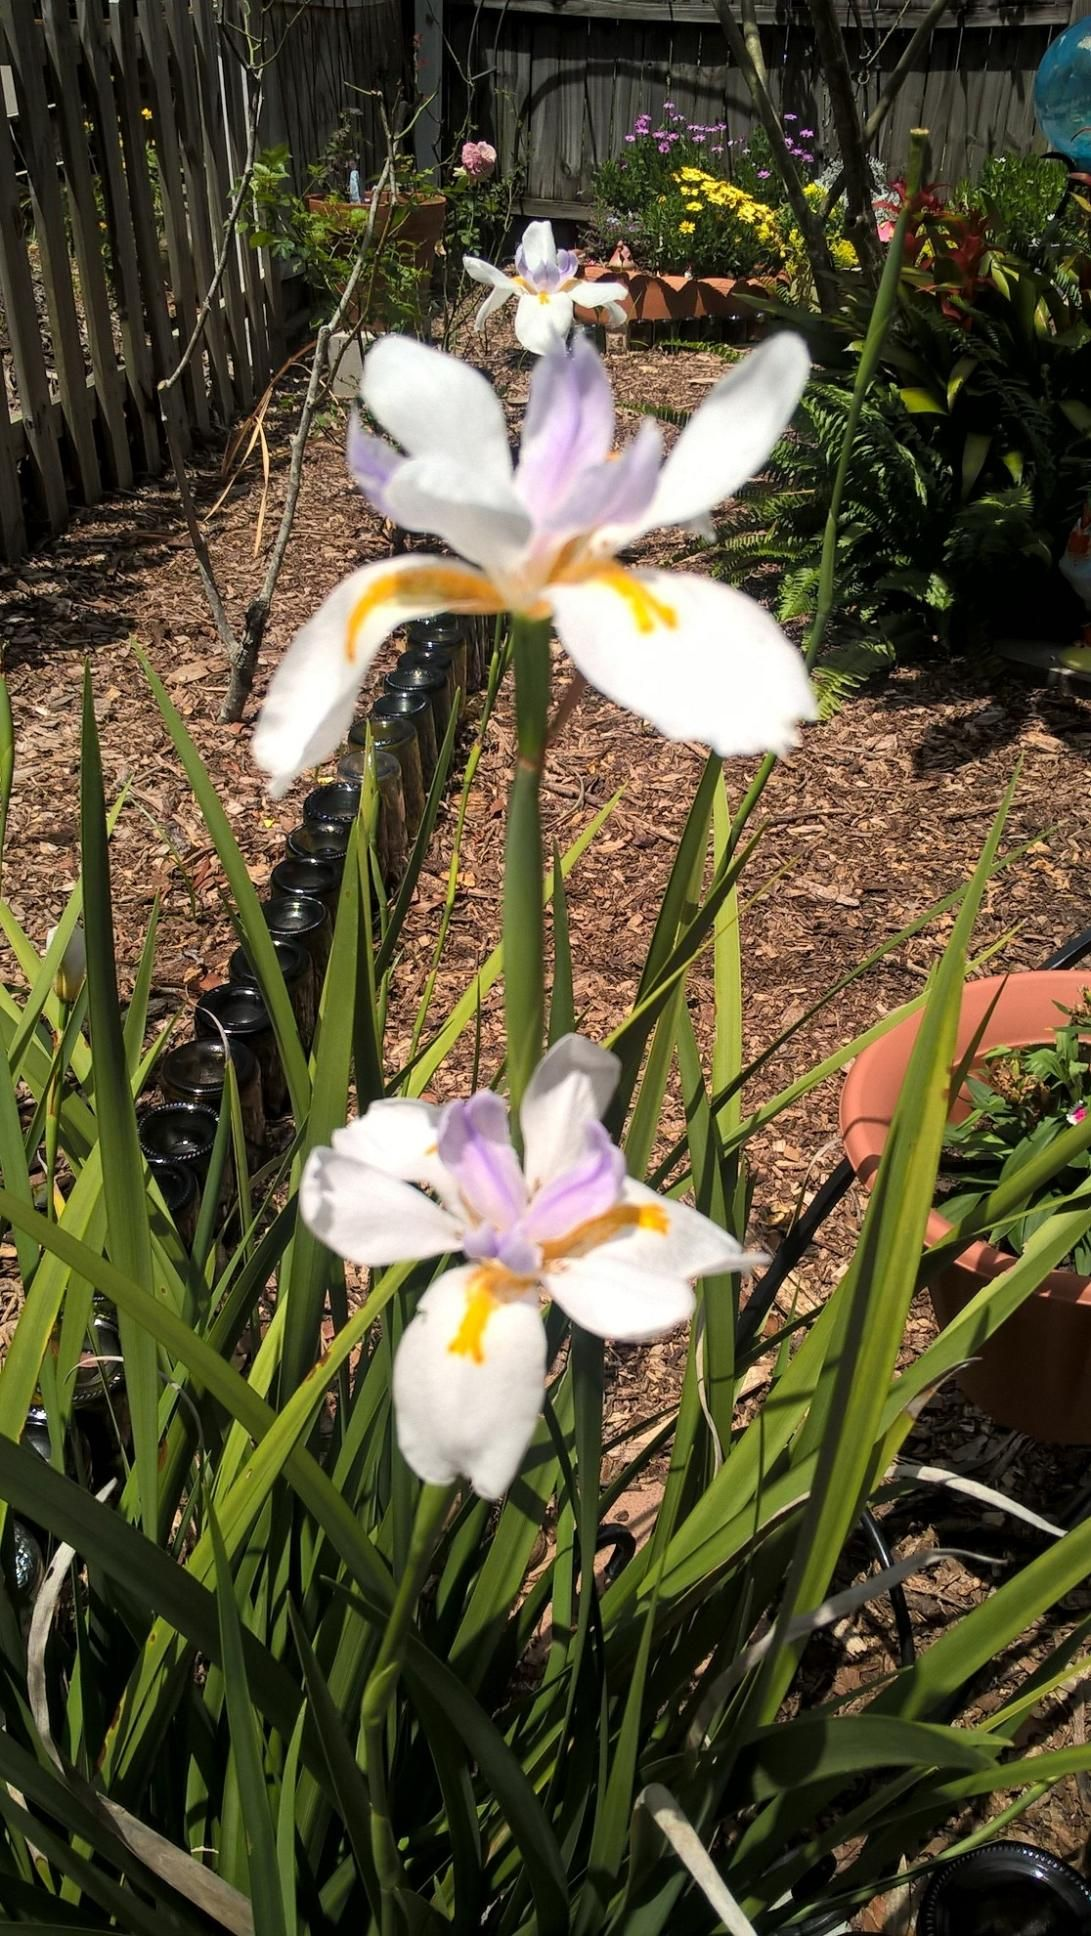 African iris large whitewaxy flowers narrow iris like leaves african iris large whitewaxy flowers narrow iris like leaves part mightylinksfo